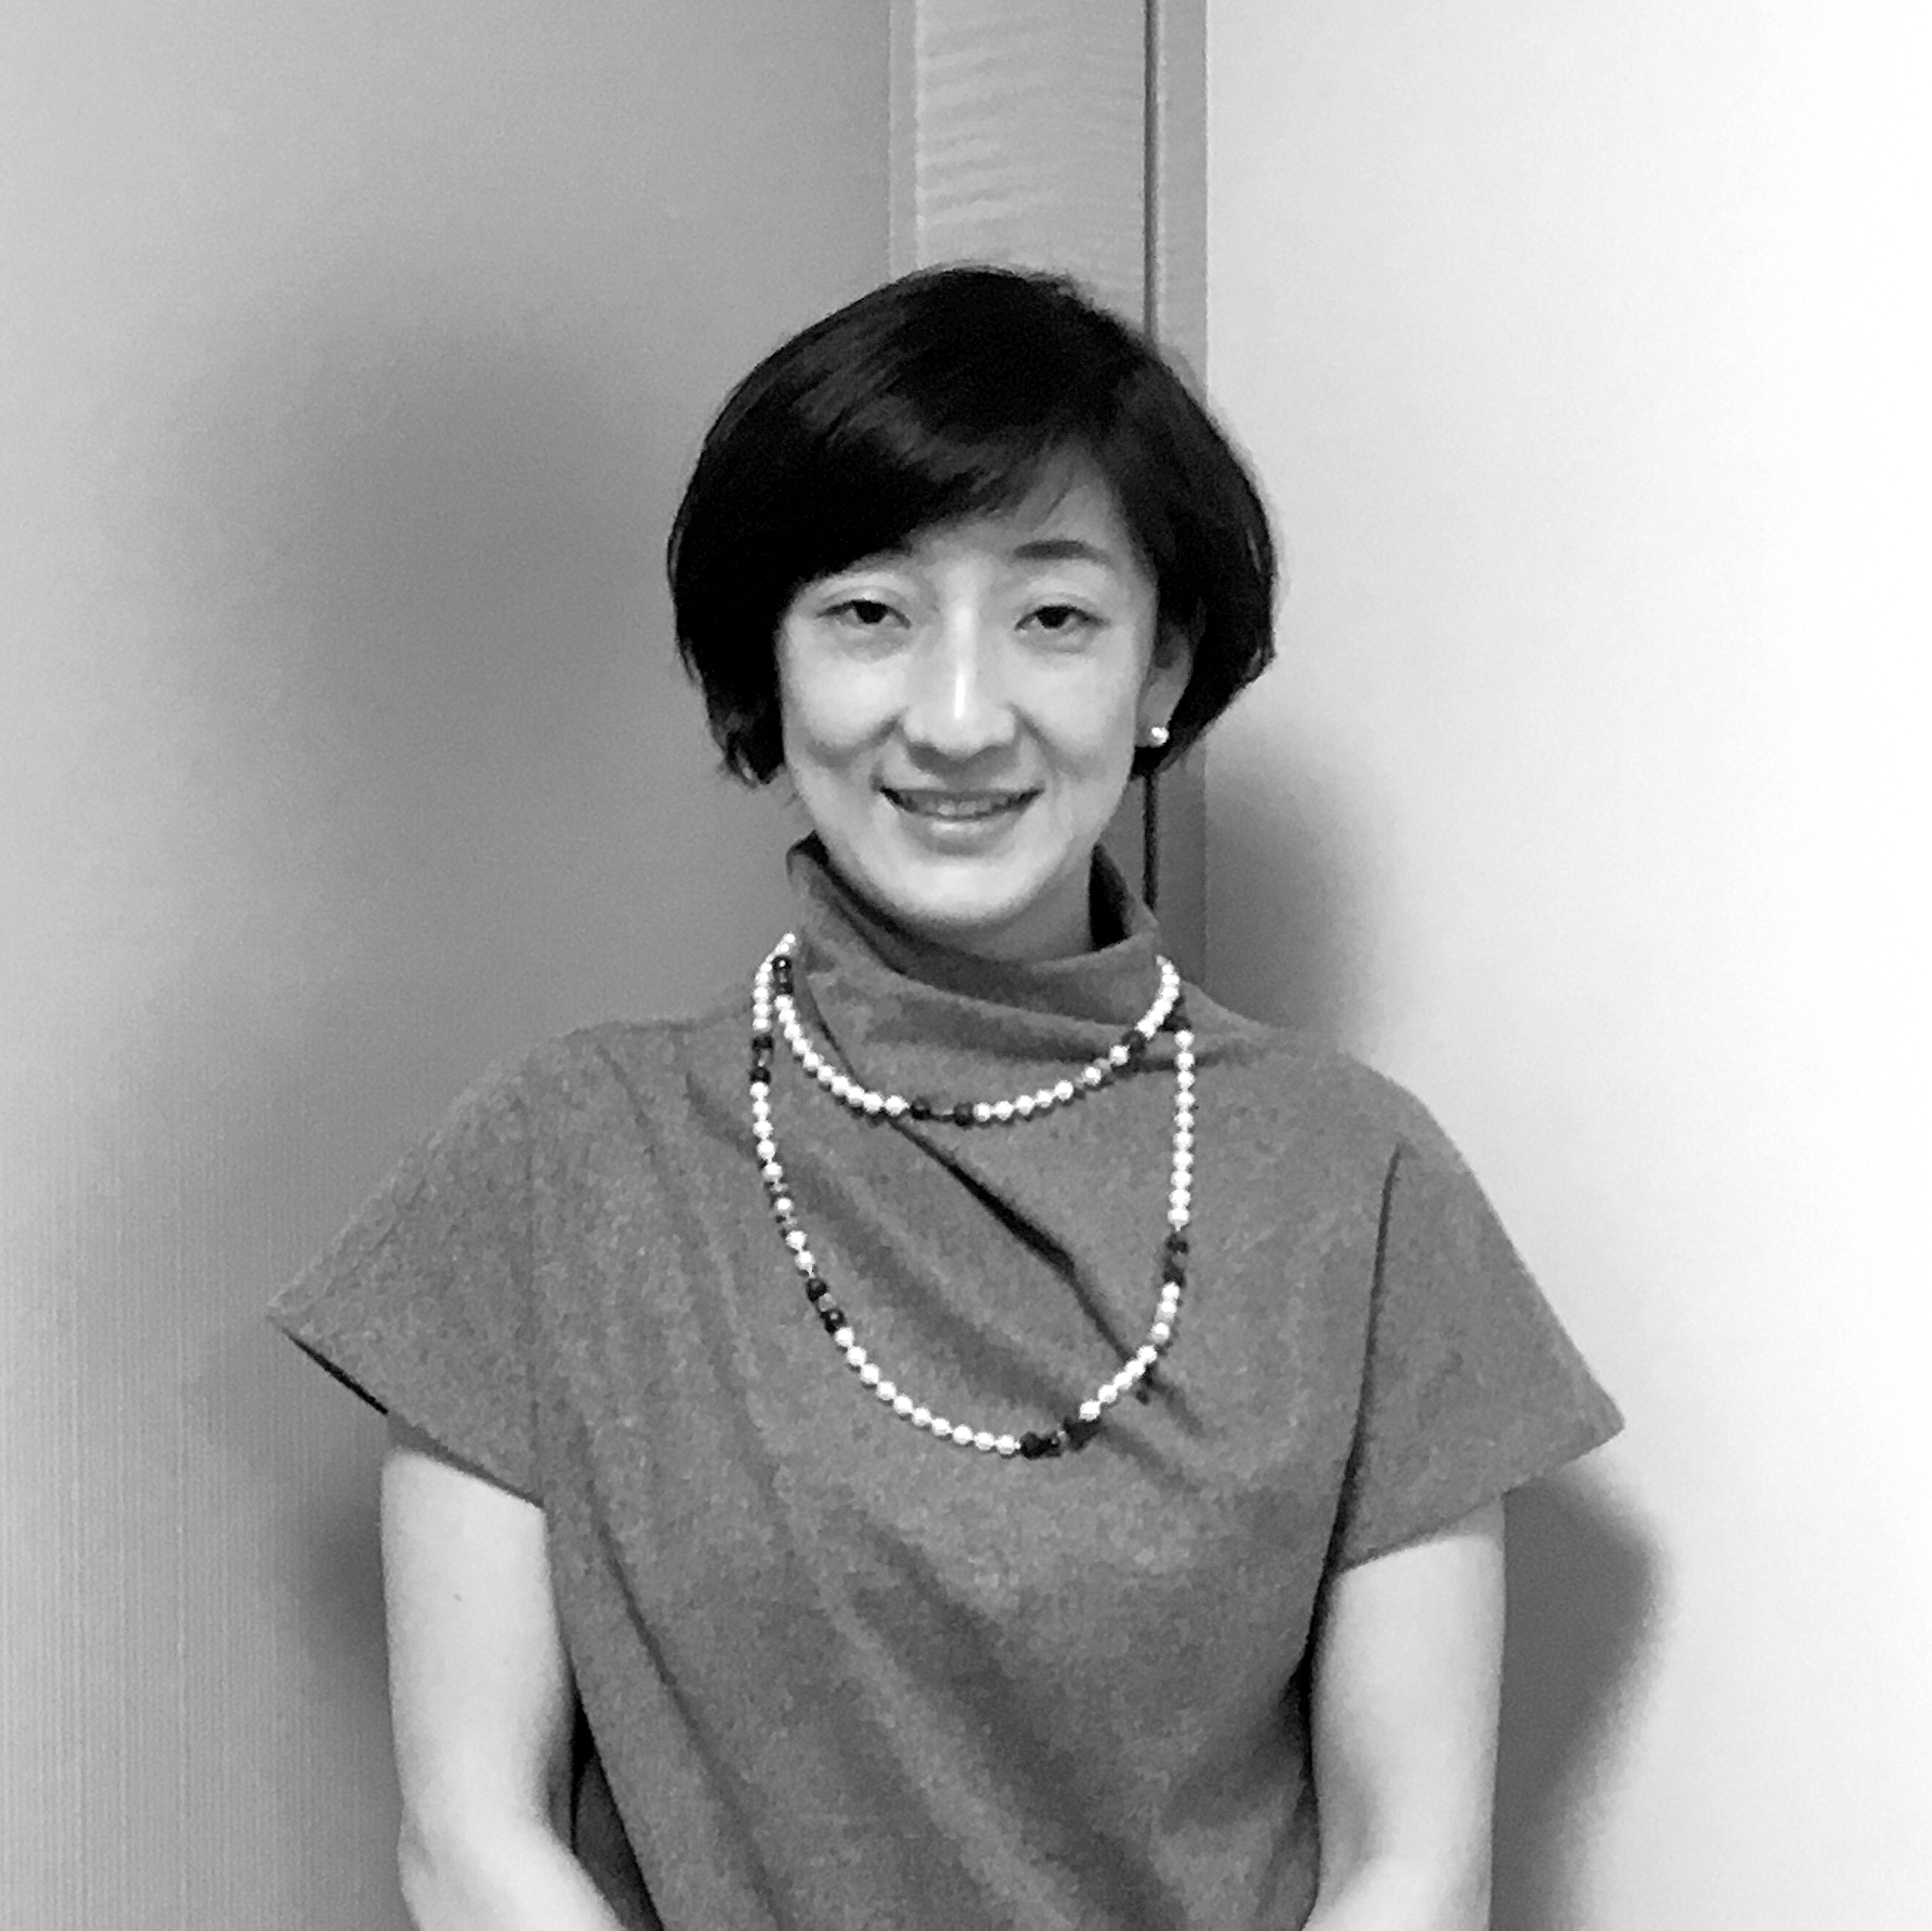 Rika Saionji   Rika was brought up in a family whose parents (Masami & Hiroo Saionji) were dedicated to working for the peace.  Her core values come from her spiritual teacher and grand father  Masahisa Goi  who taught her the importance of the prayer 'May Peace Prevail on Earth'.